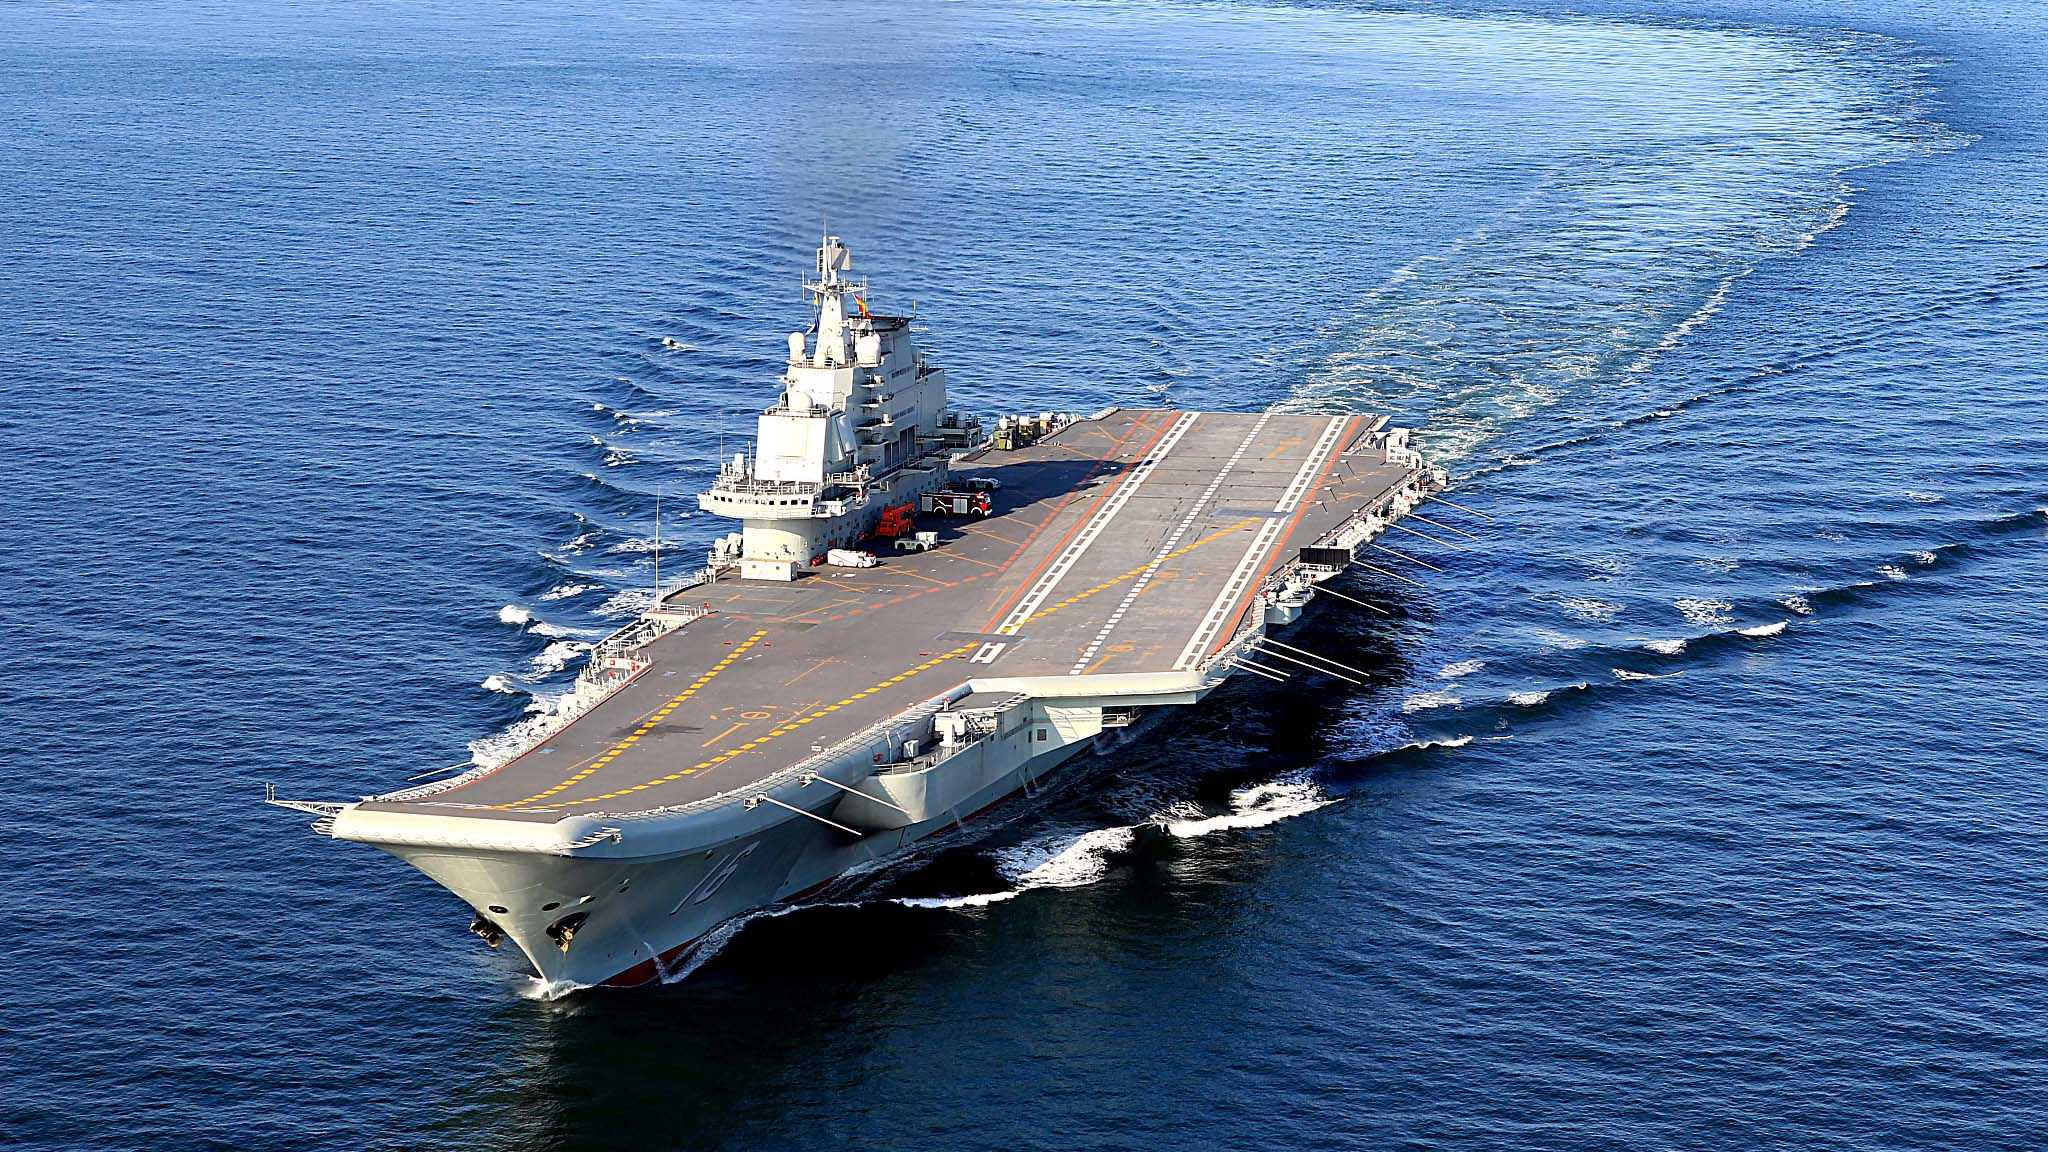 Work underway to enhance capabilities of China's aircraft carrier Liaoning